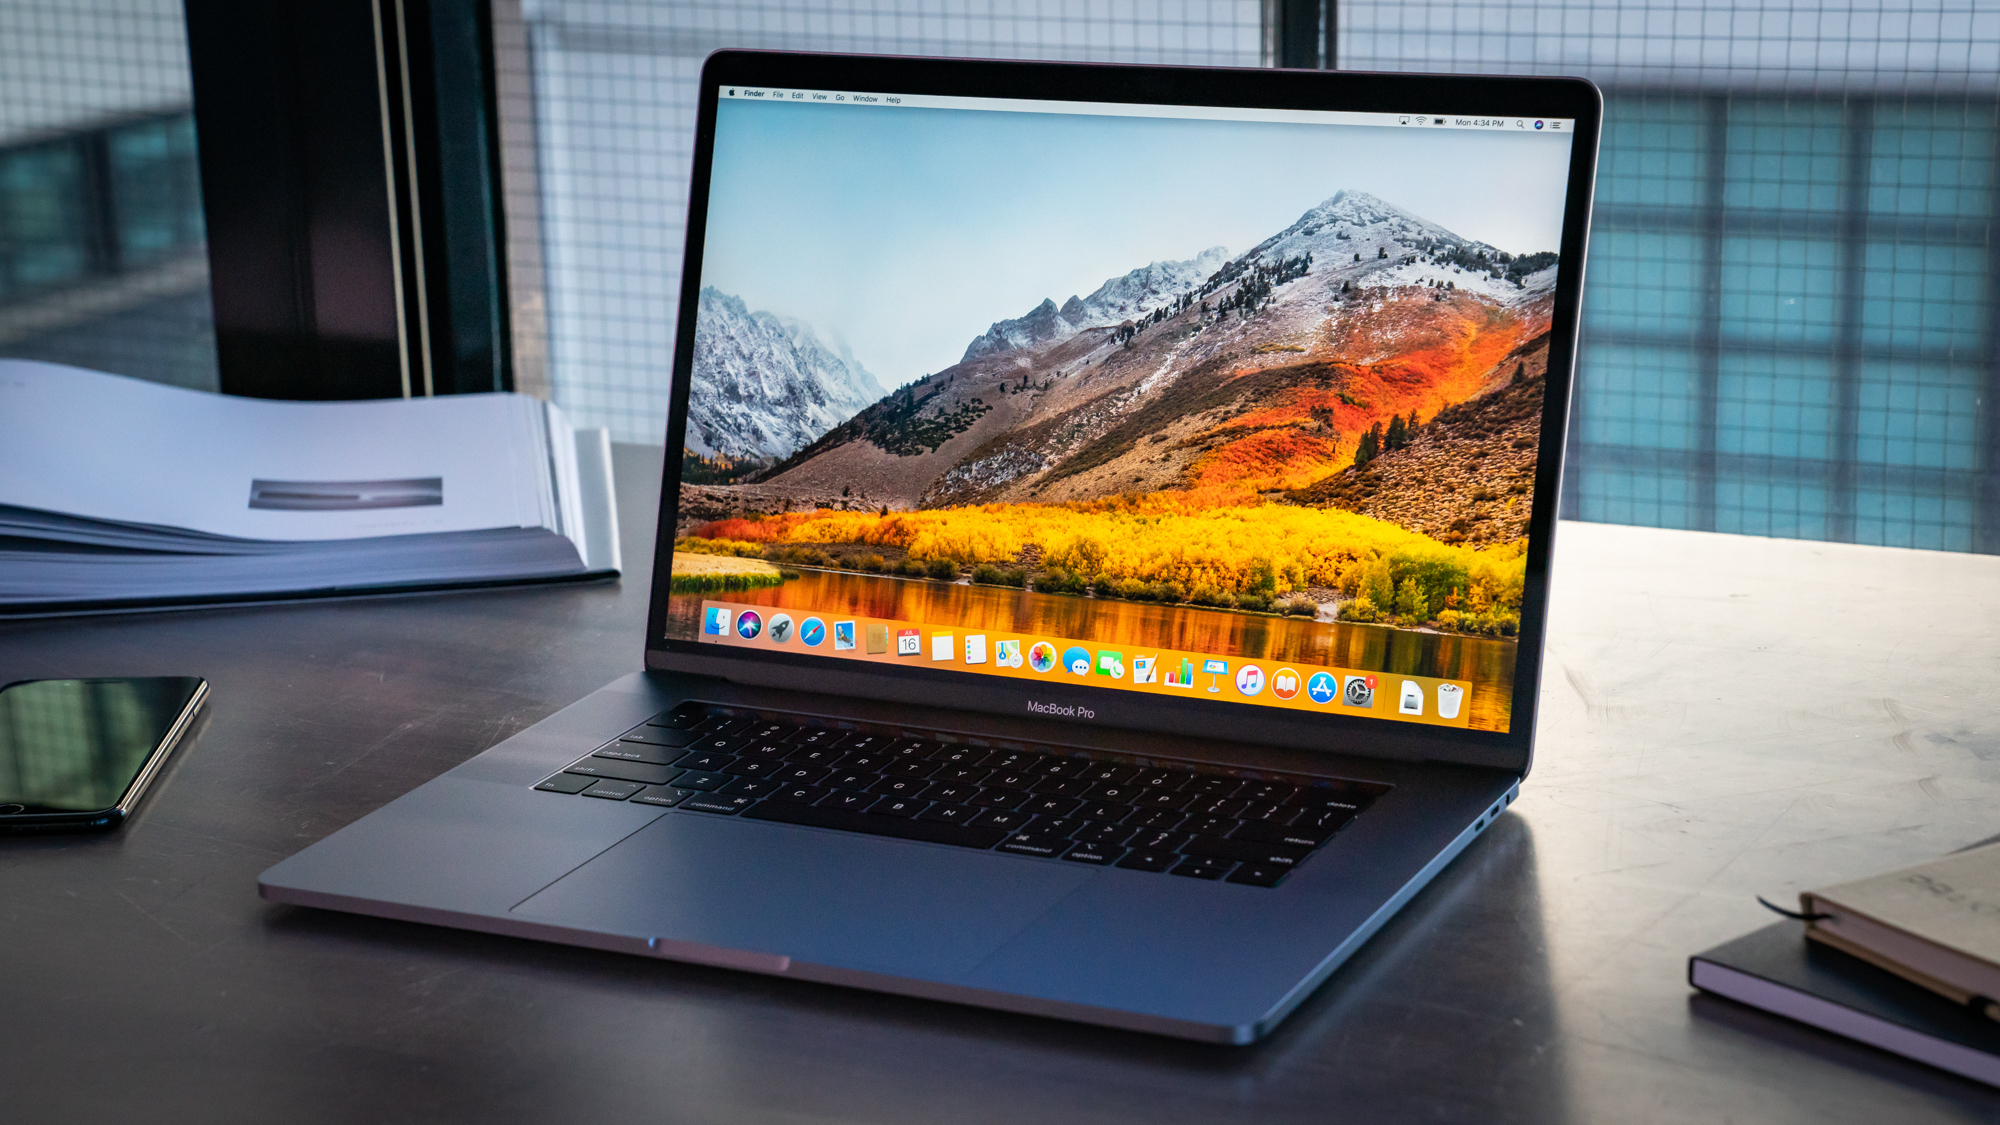 Opinion: Should You Buy a Refurbished MacBook for School?